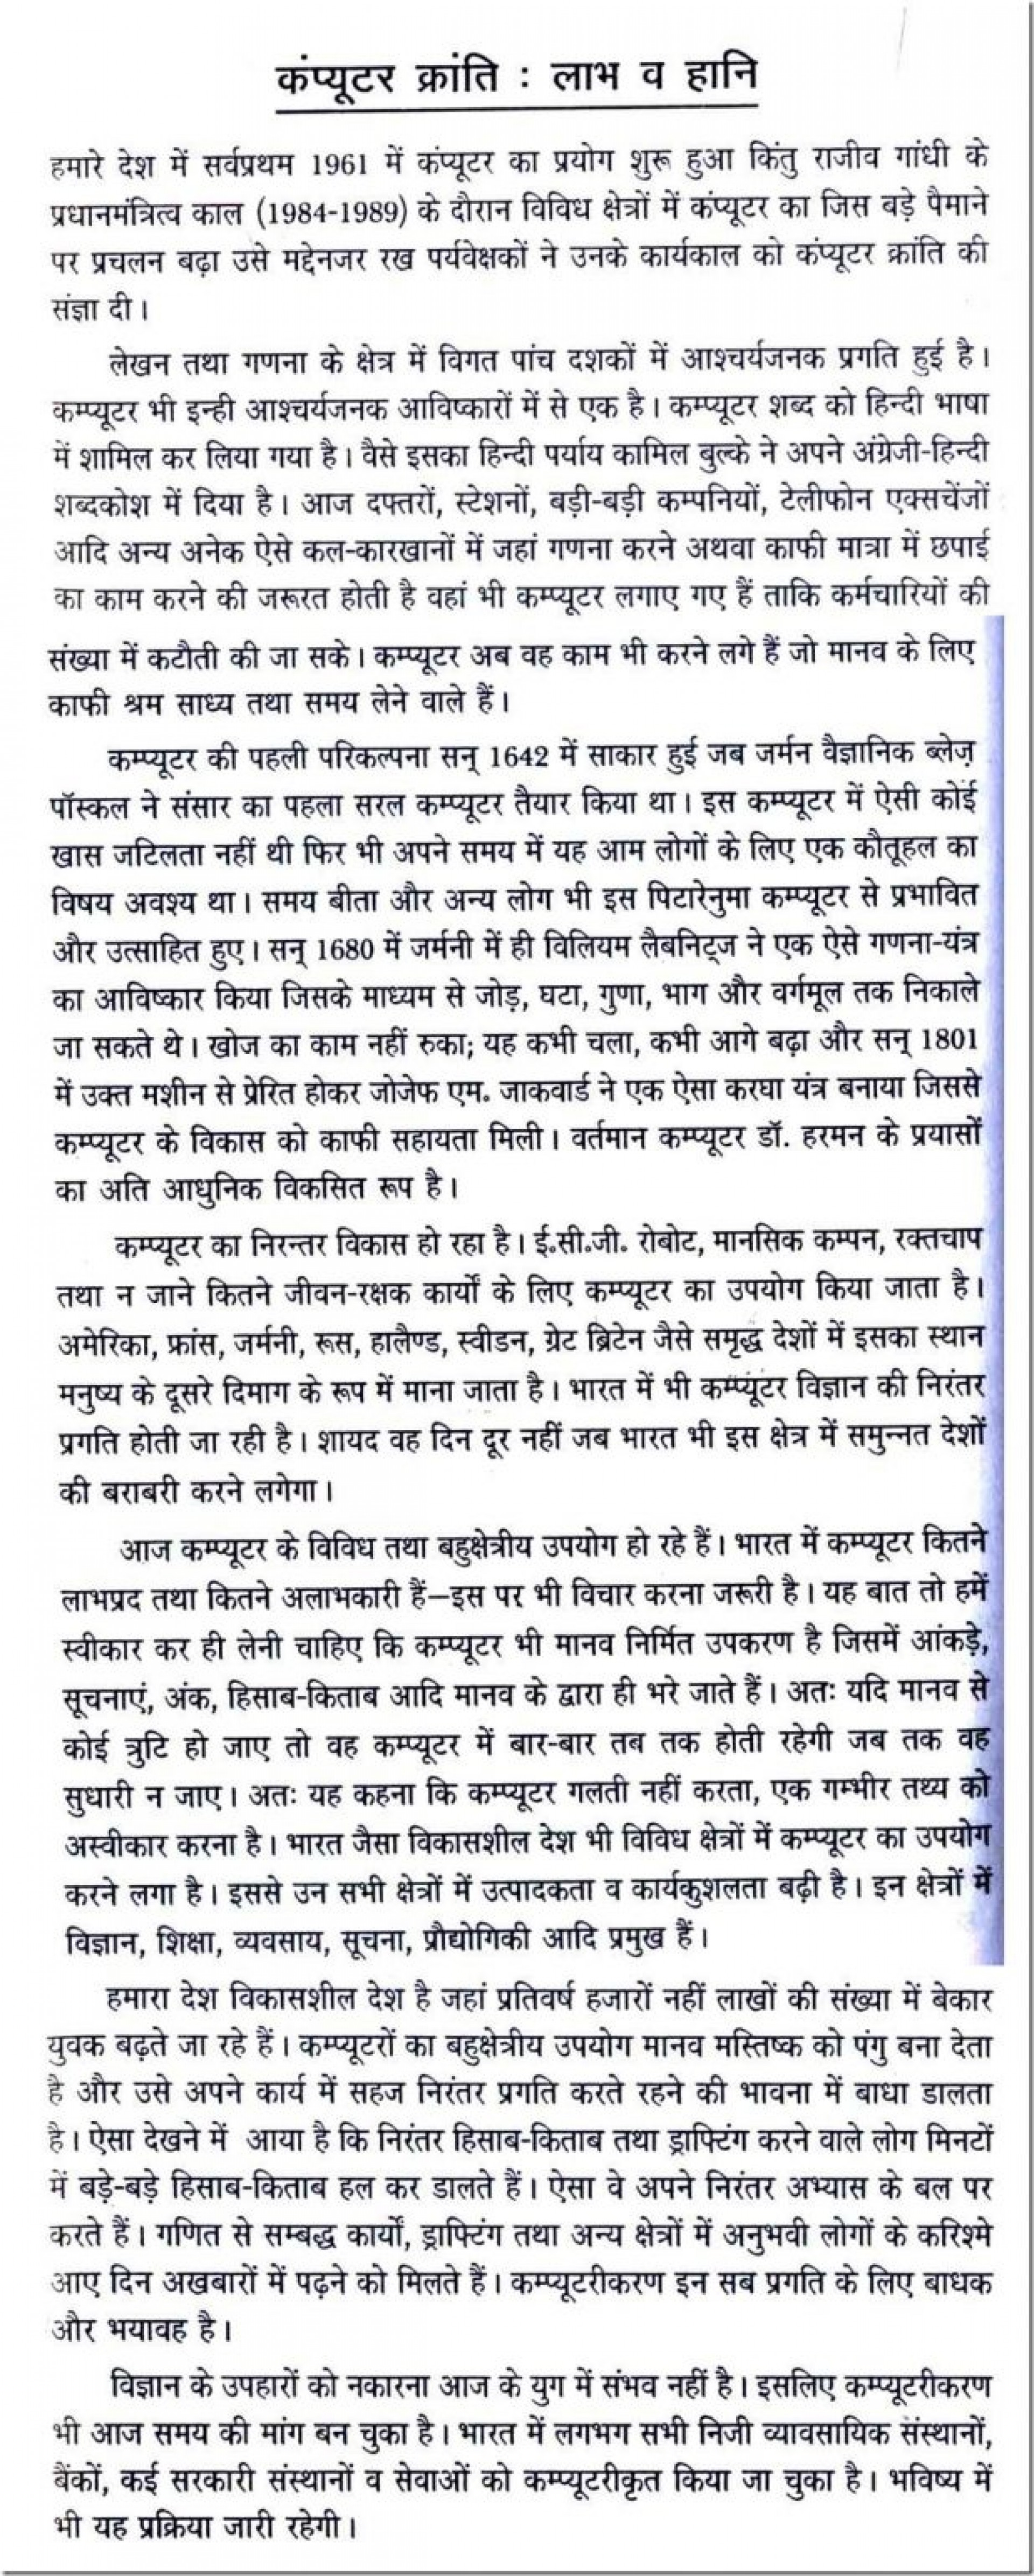 004 Essay Example Determination Thumb On In English Self Determines Your Destination To Succeed College Research Sports An And Hardwork Leads Success Can Move Mountains Hindi Is The Key Remarkable Conclusion Sample 1920